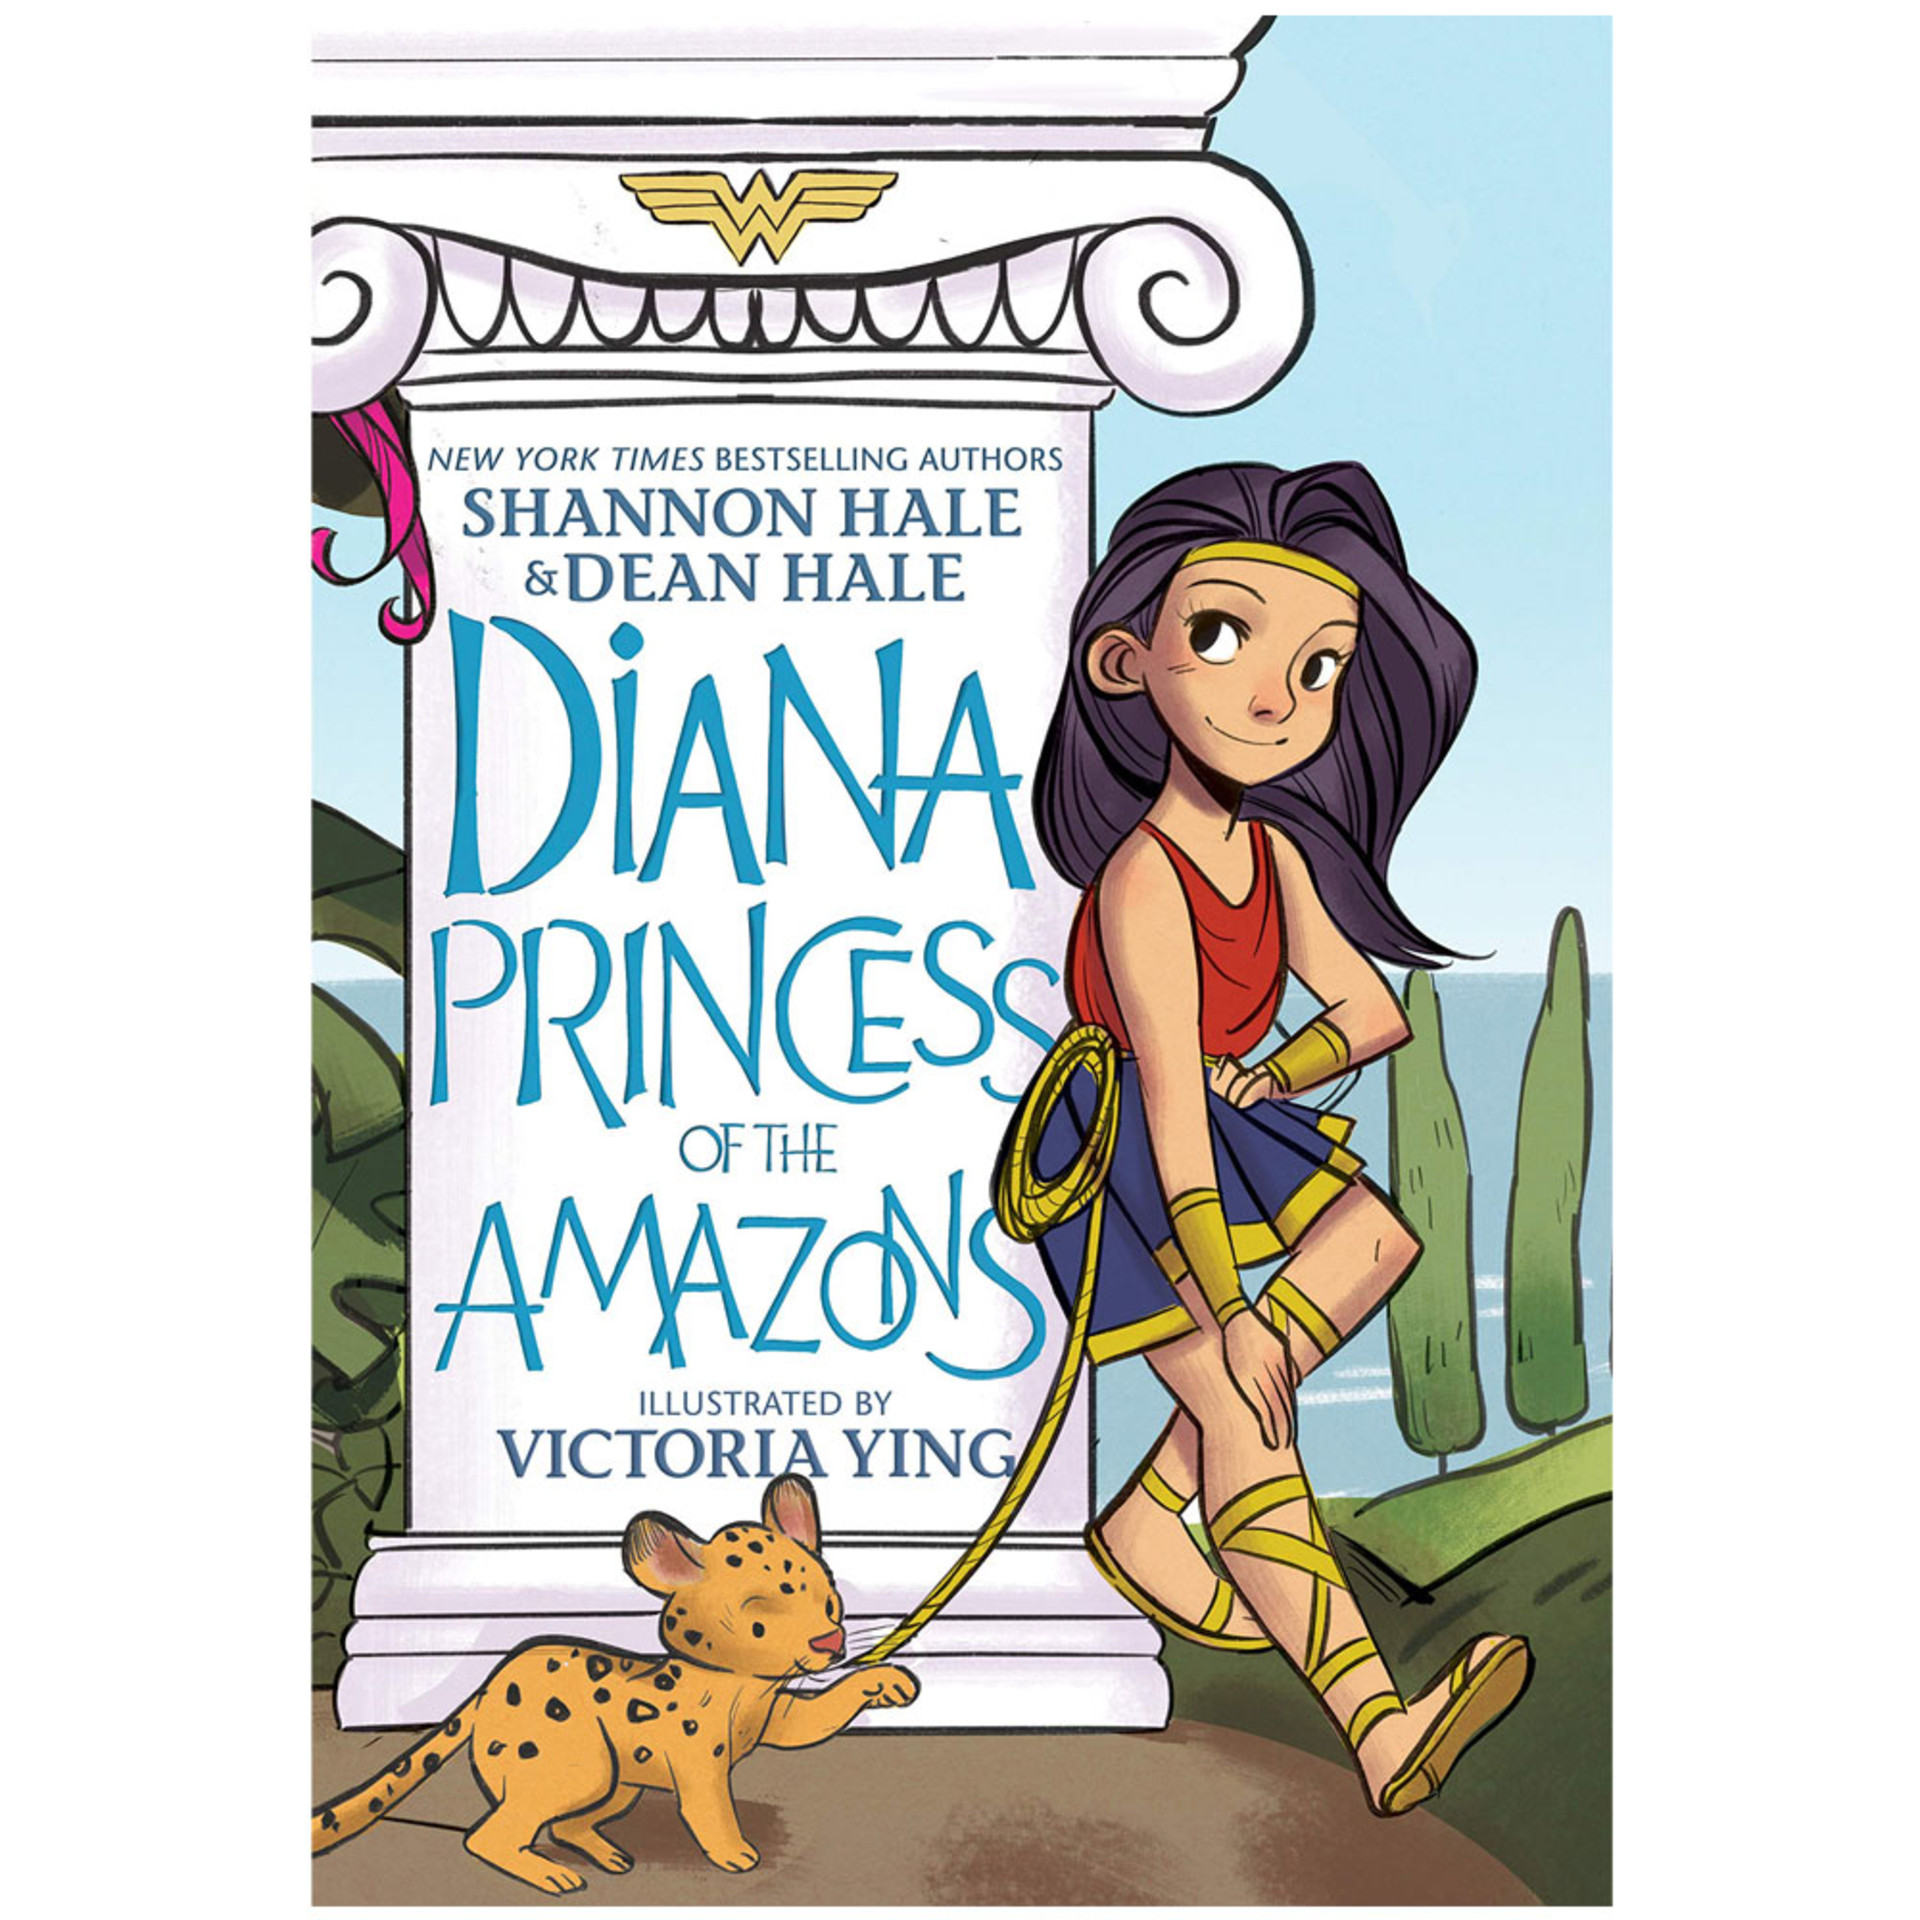 Diana: Princess of the Amazons by Shannon Hale and Dean Hale, illustrated by Victoria Ying